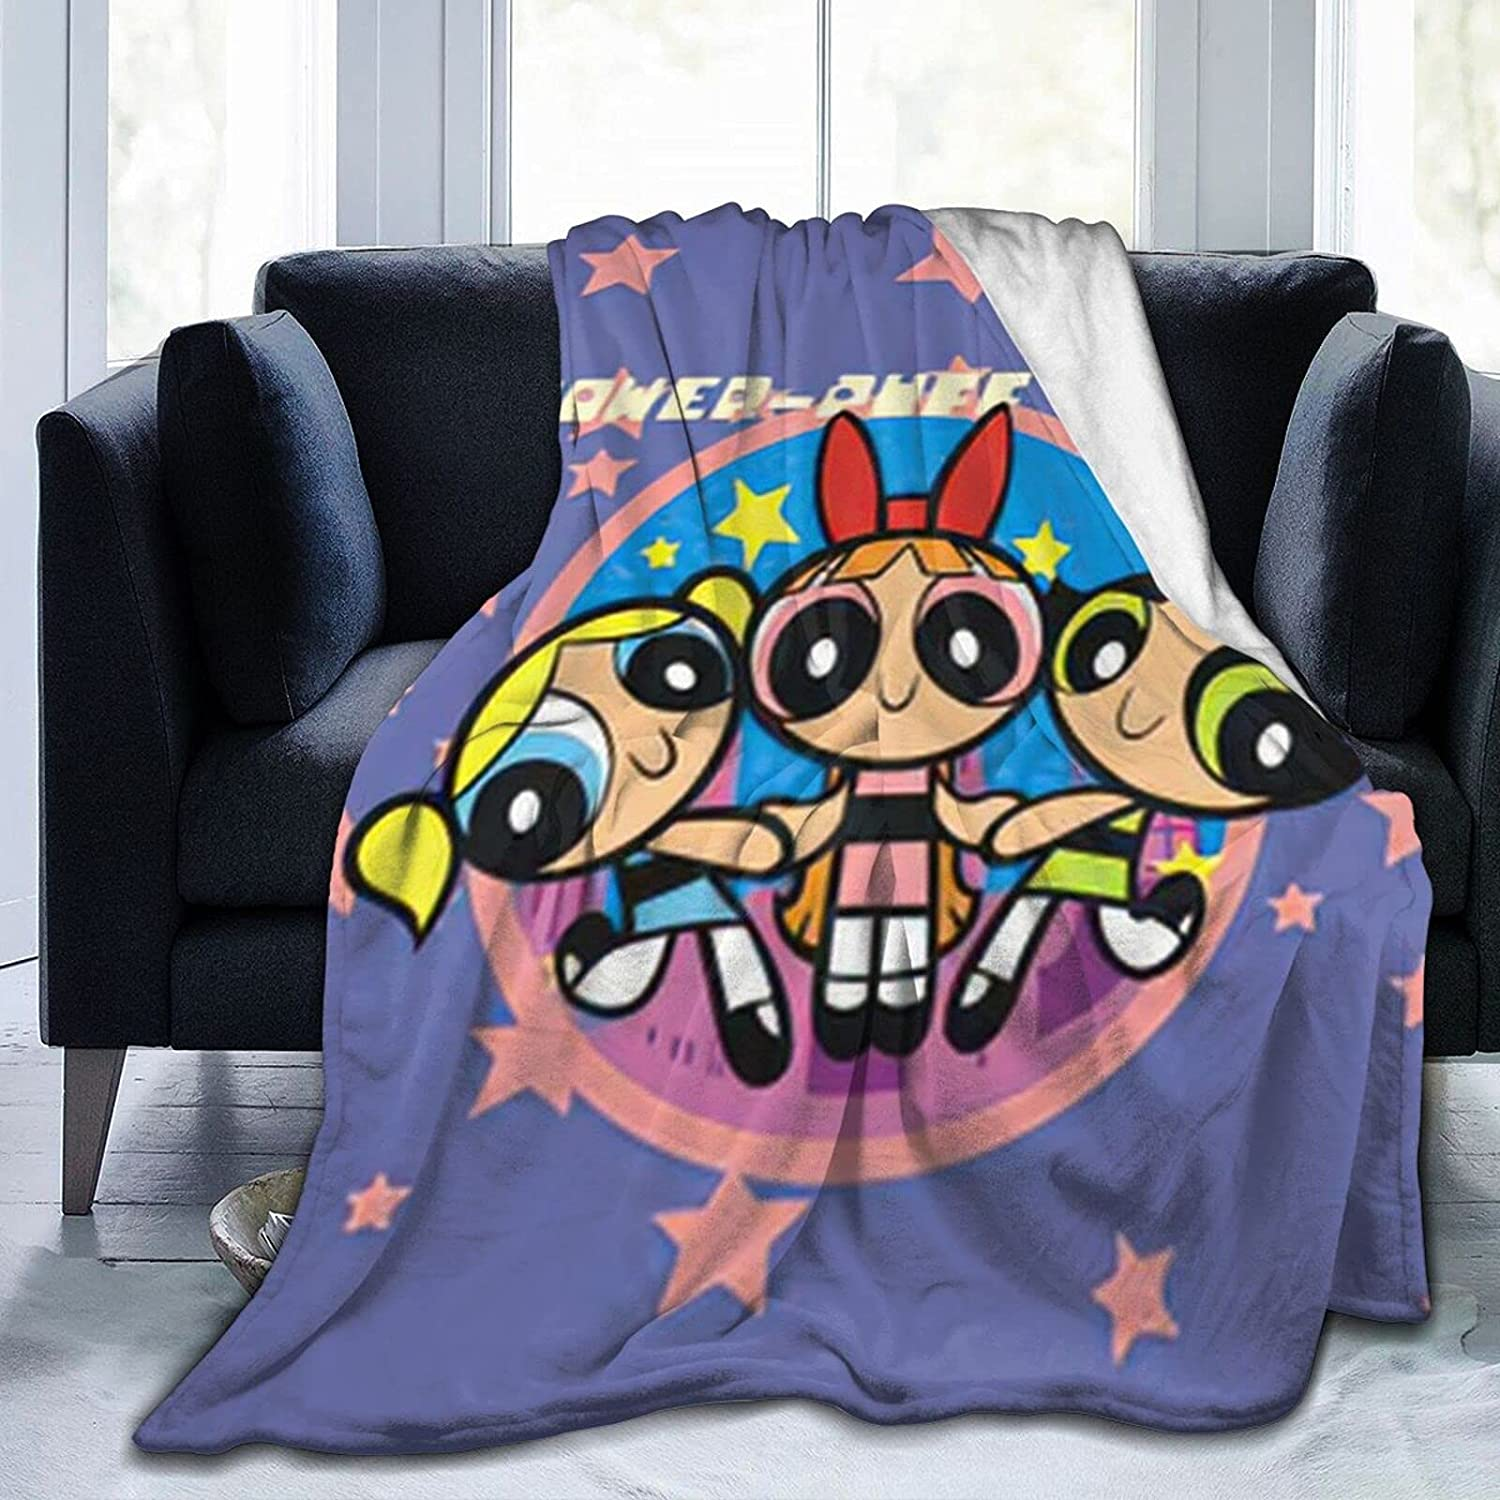 Yesbddfbc The-Powerpuff-Girls Blanket Super Special SALE Popularity held Soft and Comfortable Warm